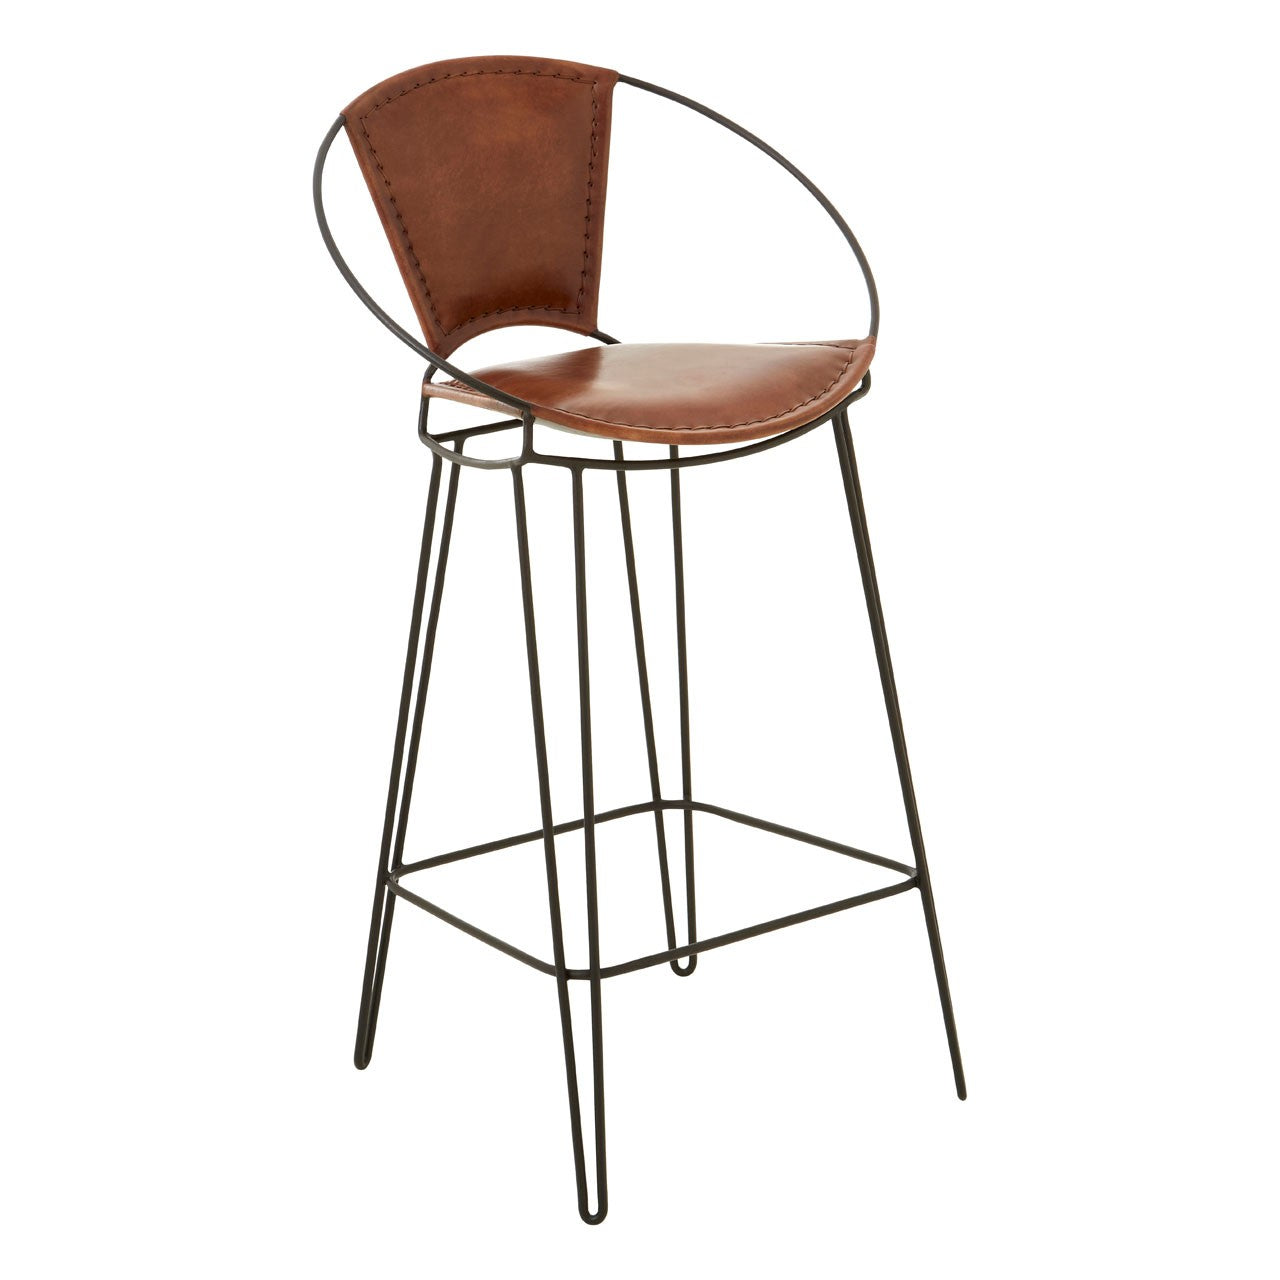 Buffalo Brown Chair With Hairpin Legs - Ezzo